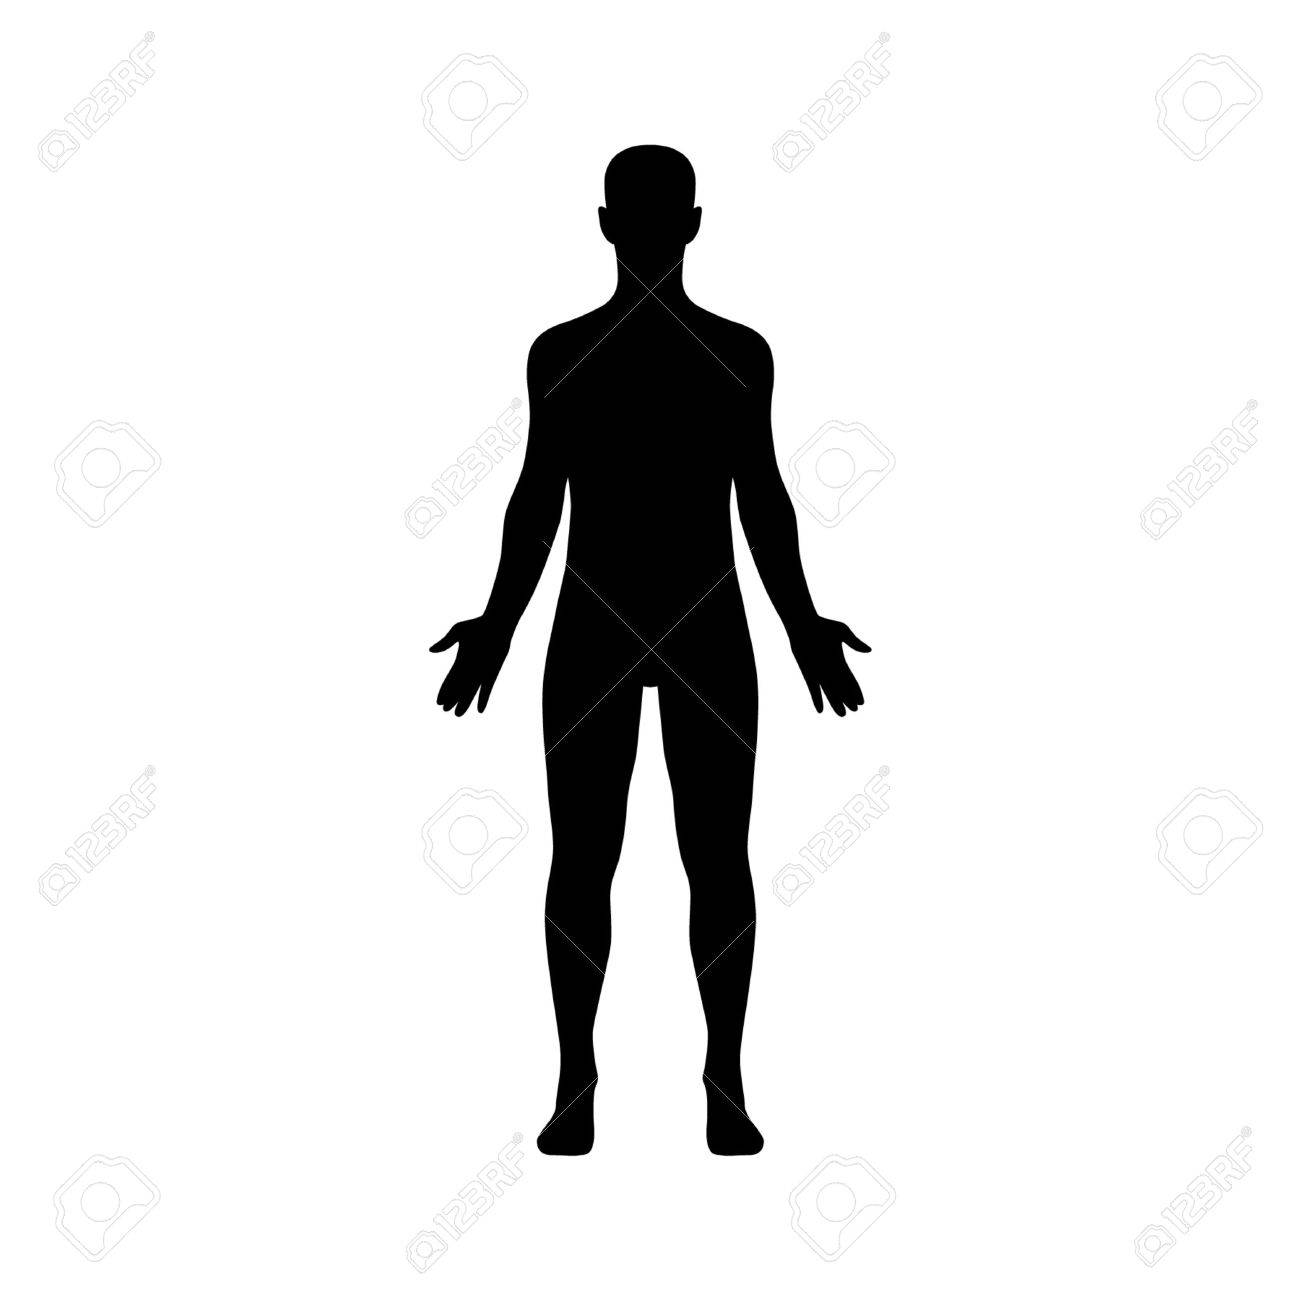 Male human body flat icon for app and website Stock Vector - 42410185